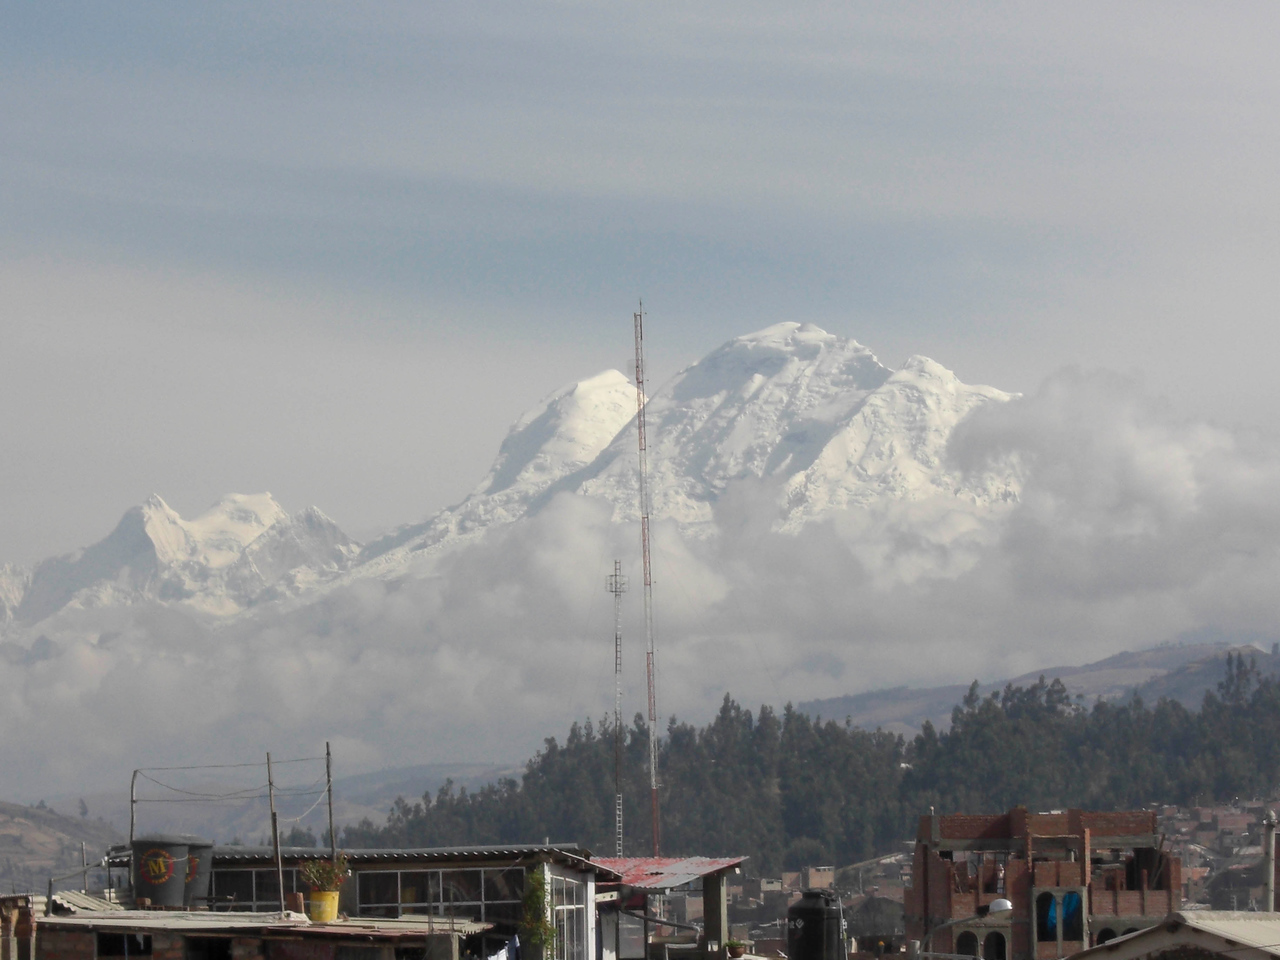 Cordillera Blanca, the view from our breakfast table